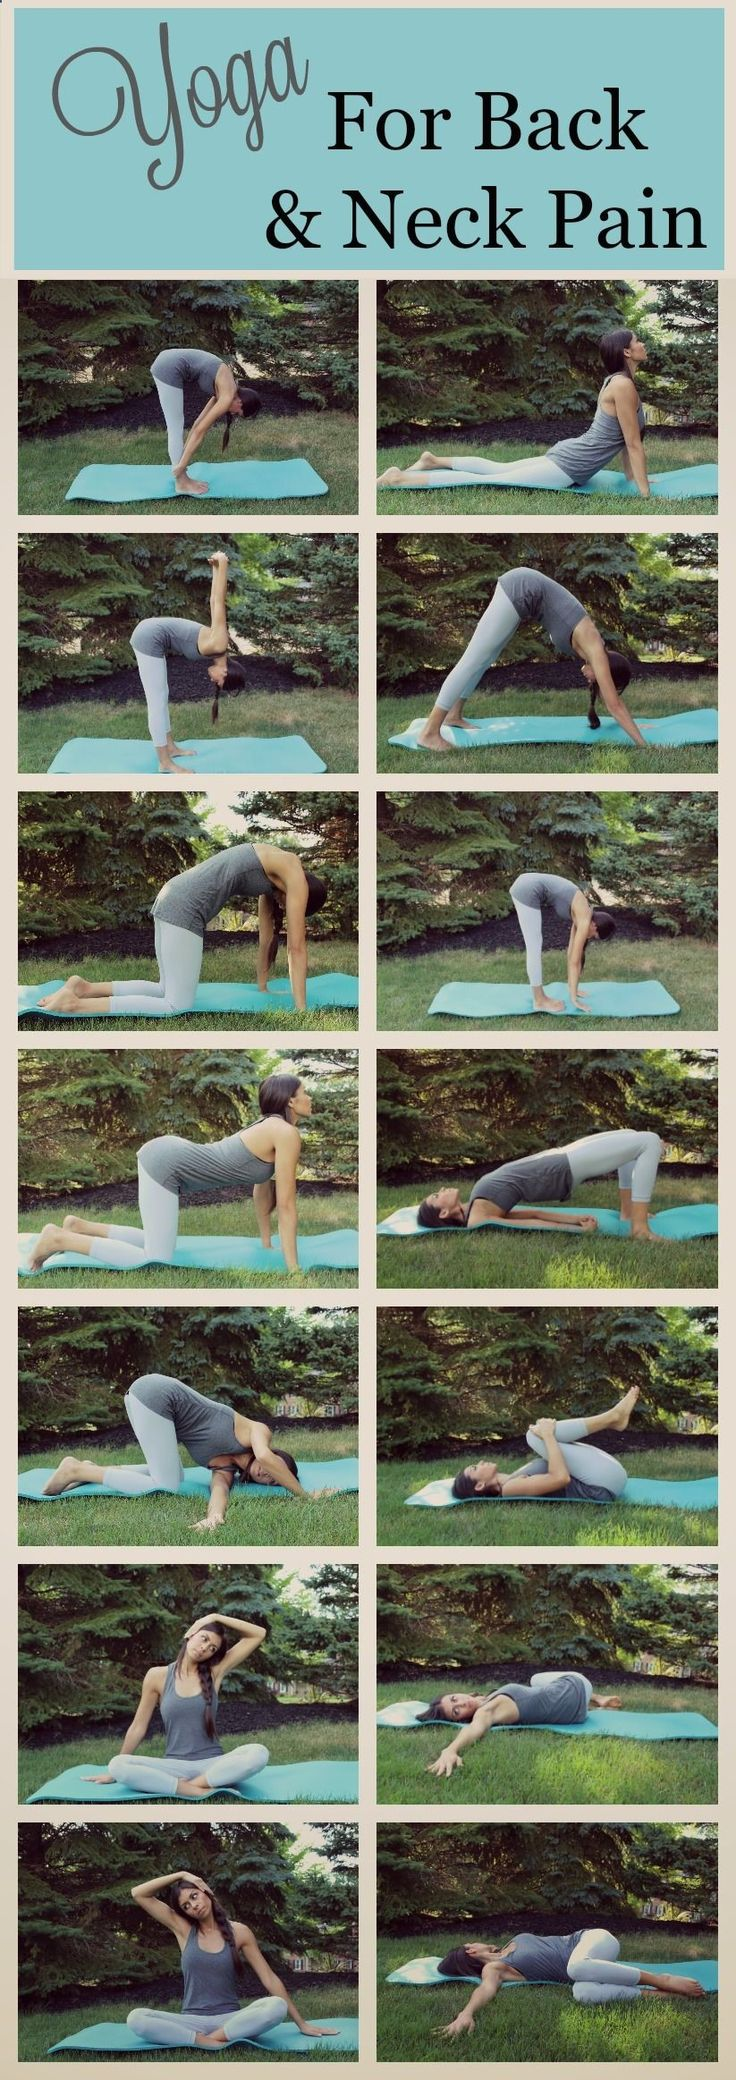 Easy Yoga Workout - Repin to save these poses for later! Give these Yoga poses a try if you are… Get your sexiest body ever without,crunches,cardio,or ever setting foot in a gym